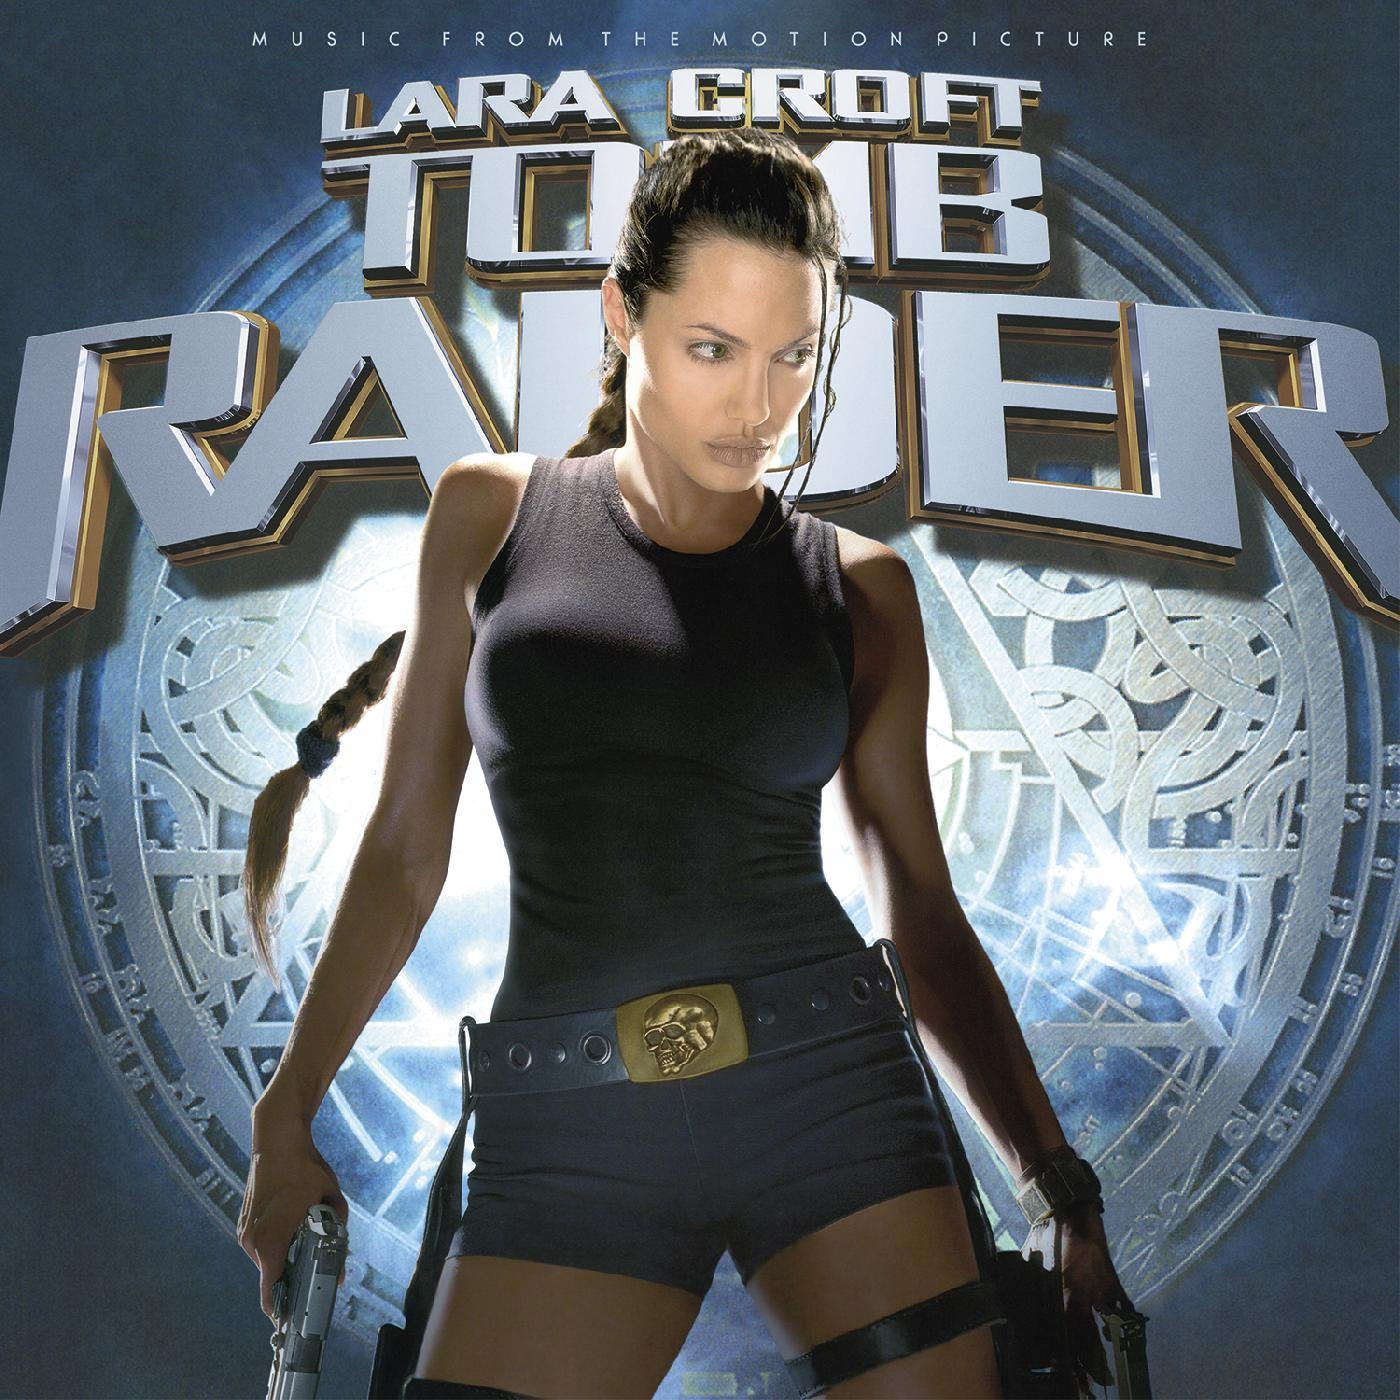 Various Artists - Lara Croft: Tomb Raider (Music from the Motion Picture) (20th Anniversary Golden Triangle Vinyl Edition) [RSD Drops 2021]